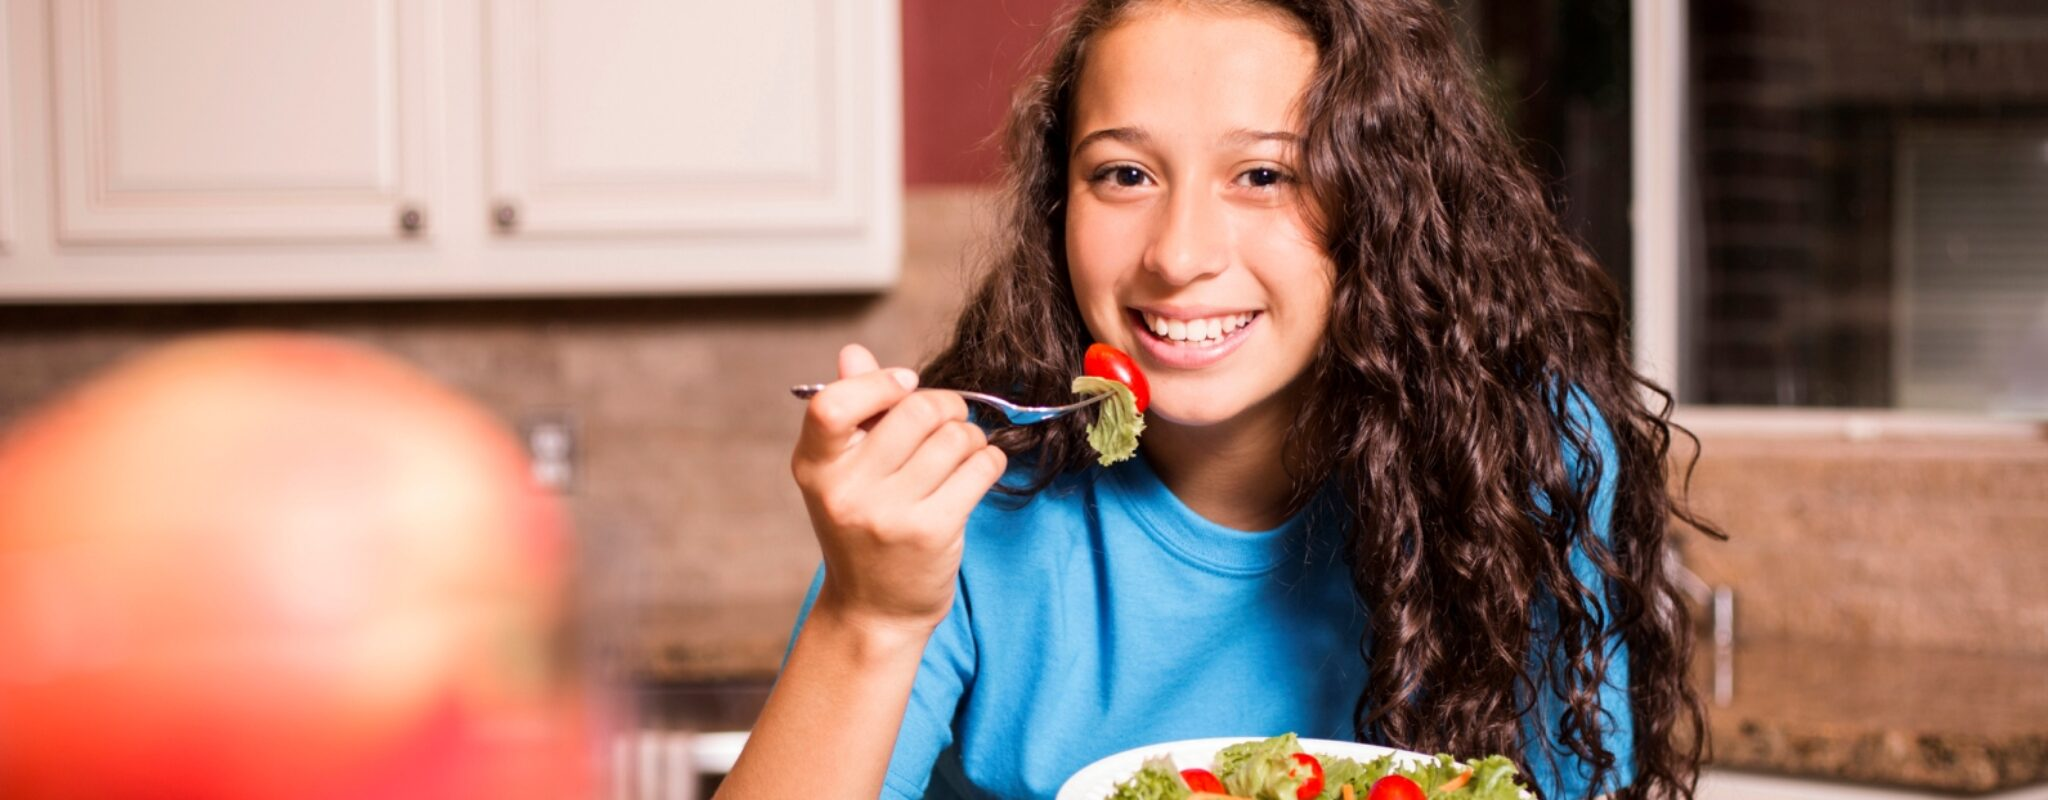 Vegetarian and Vegan Diets: Are They Safe for Kids?, Powered by Nemours Children's Health System